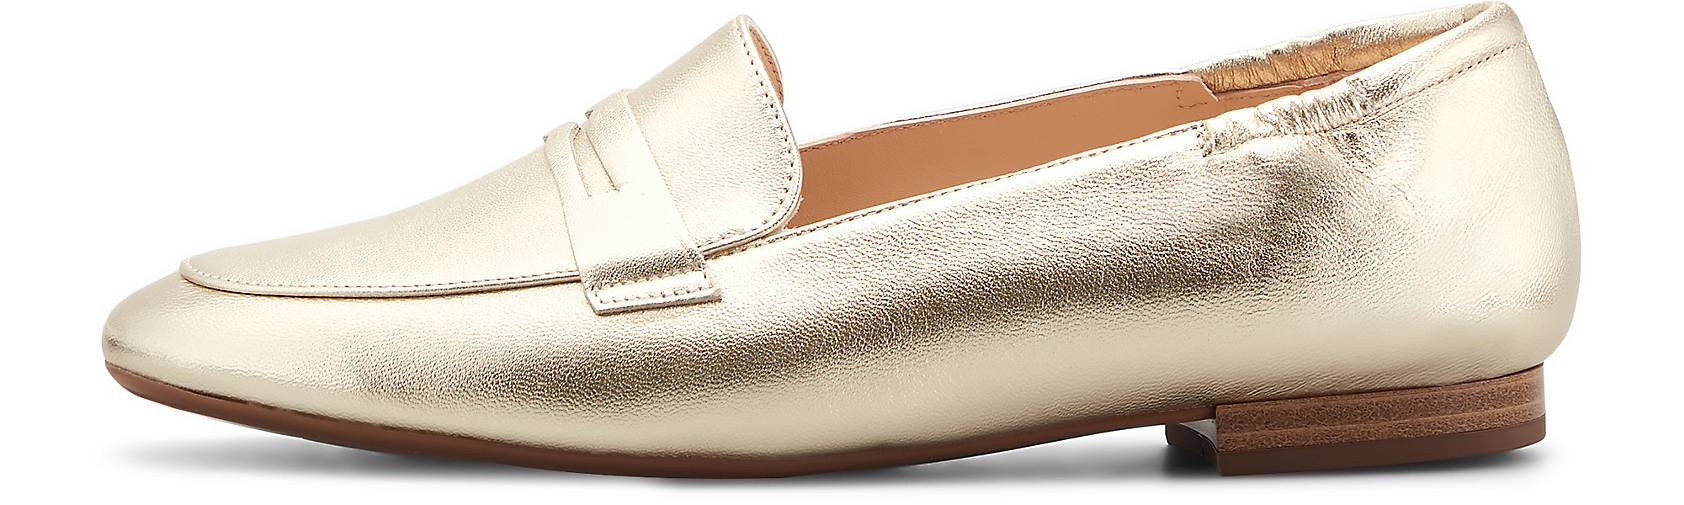 Peter Kaiser Metallic-Loafer GERLIS